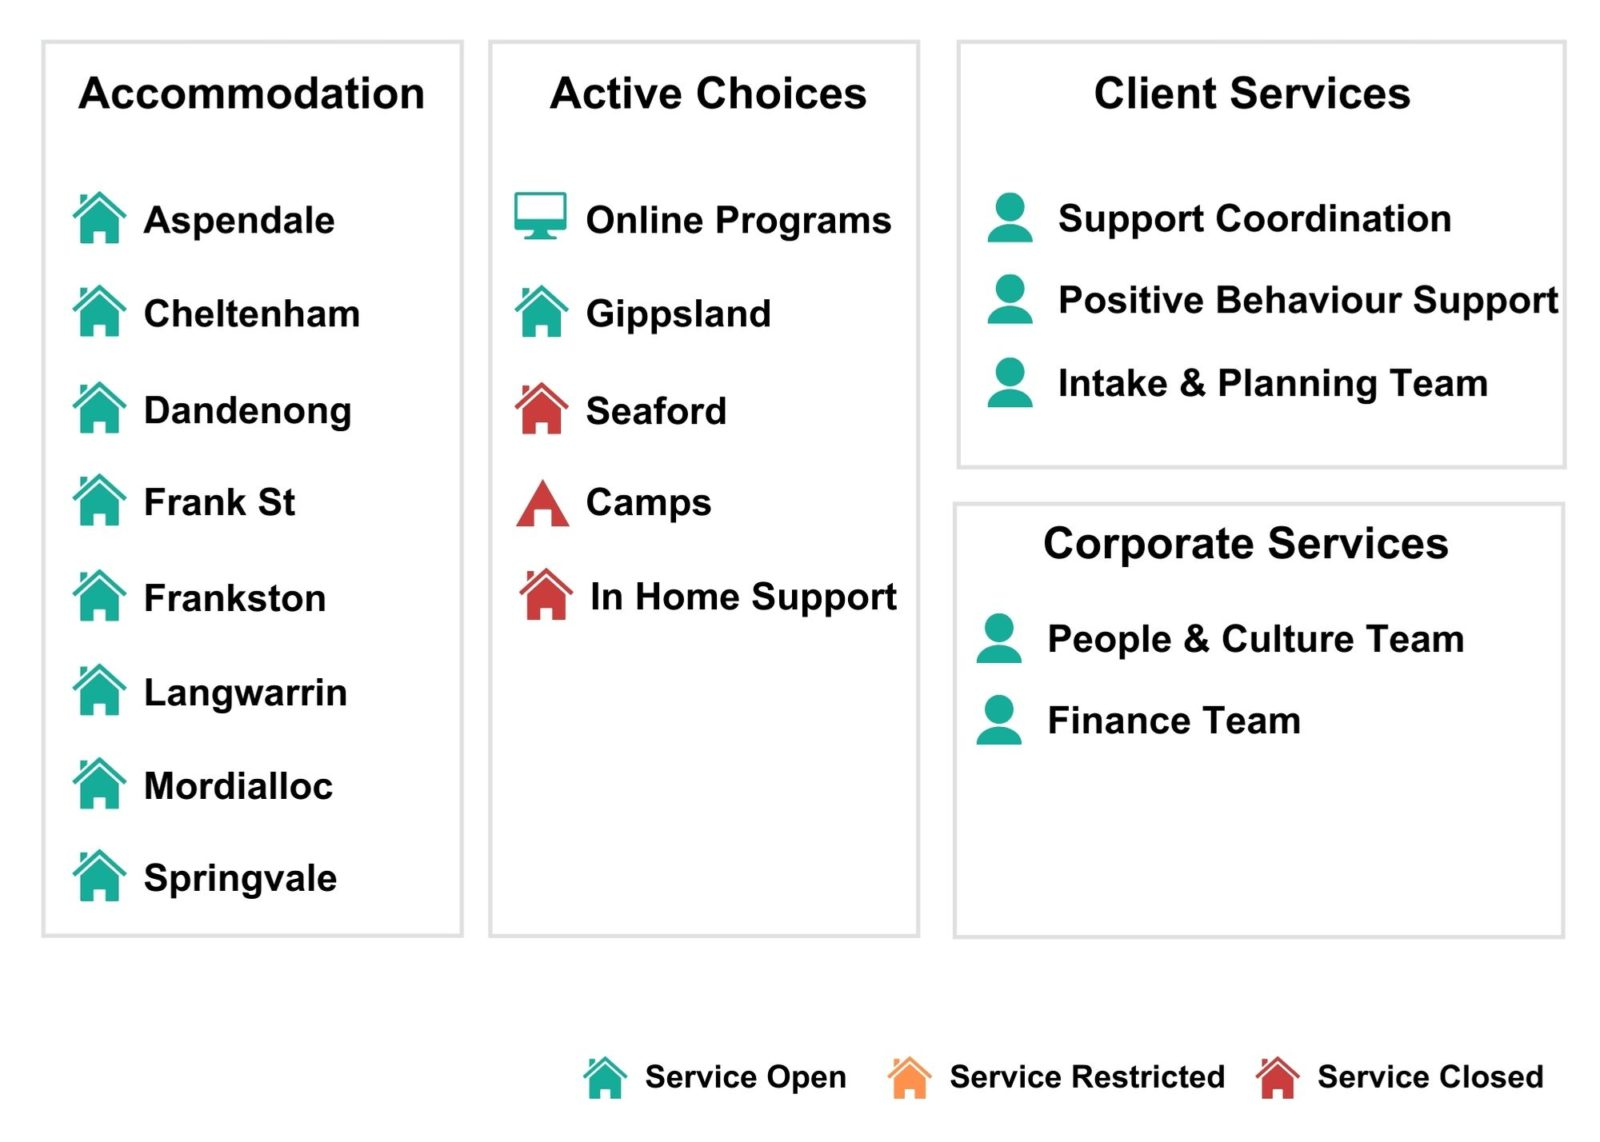 Image of SASI Services that are open or closed.